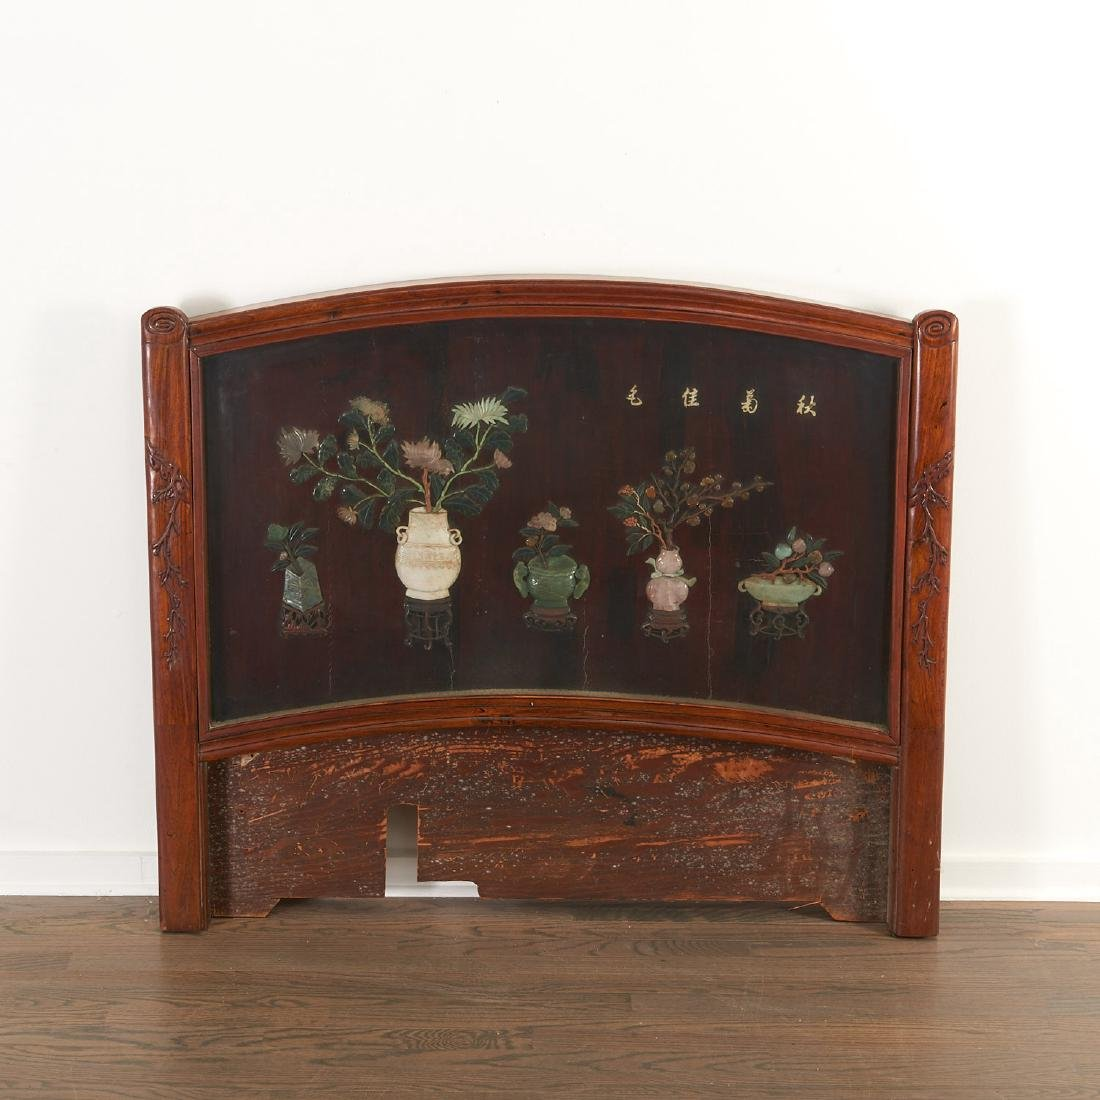 Chinese lacquered wood and jade inlaid panel